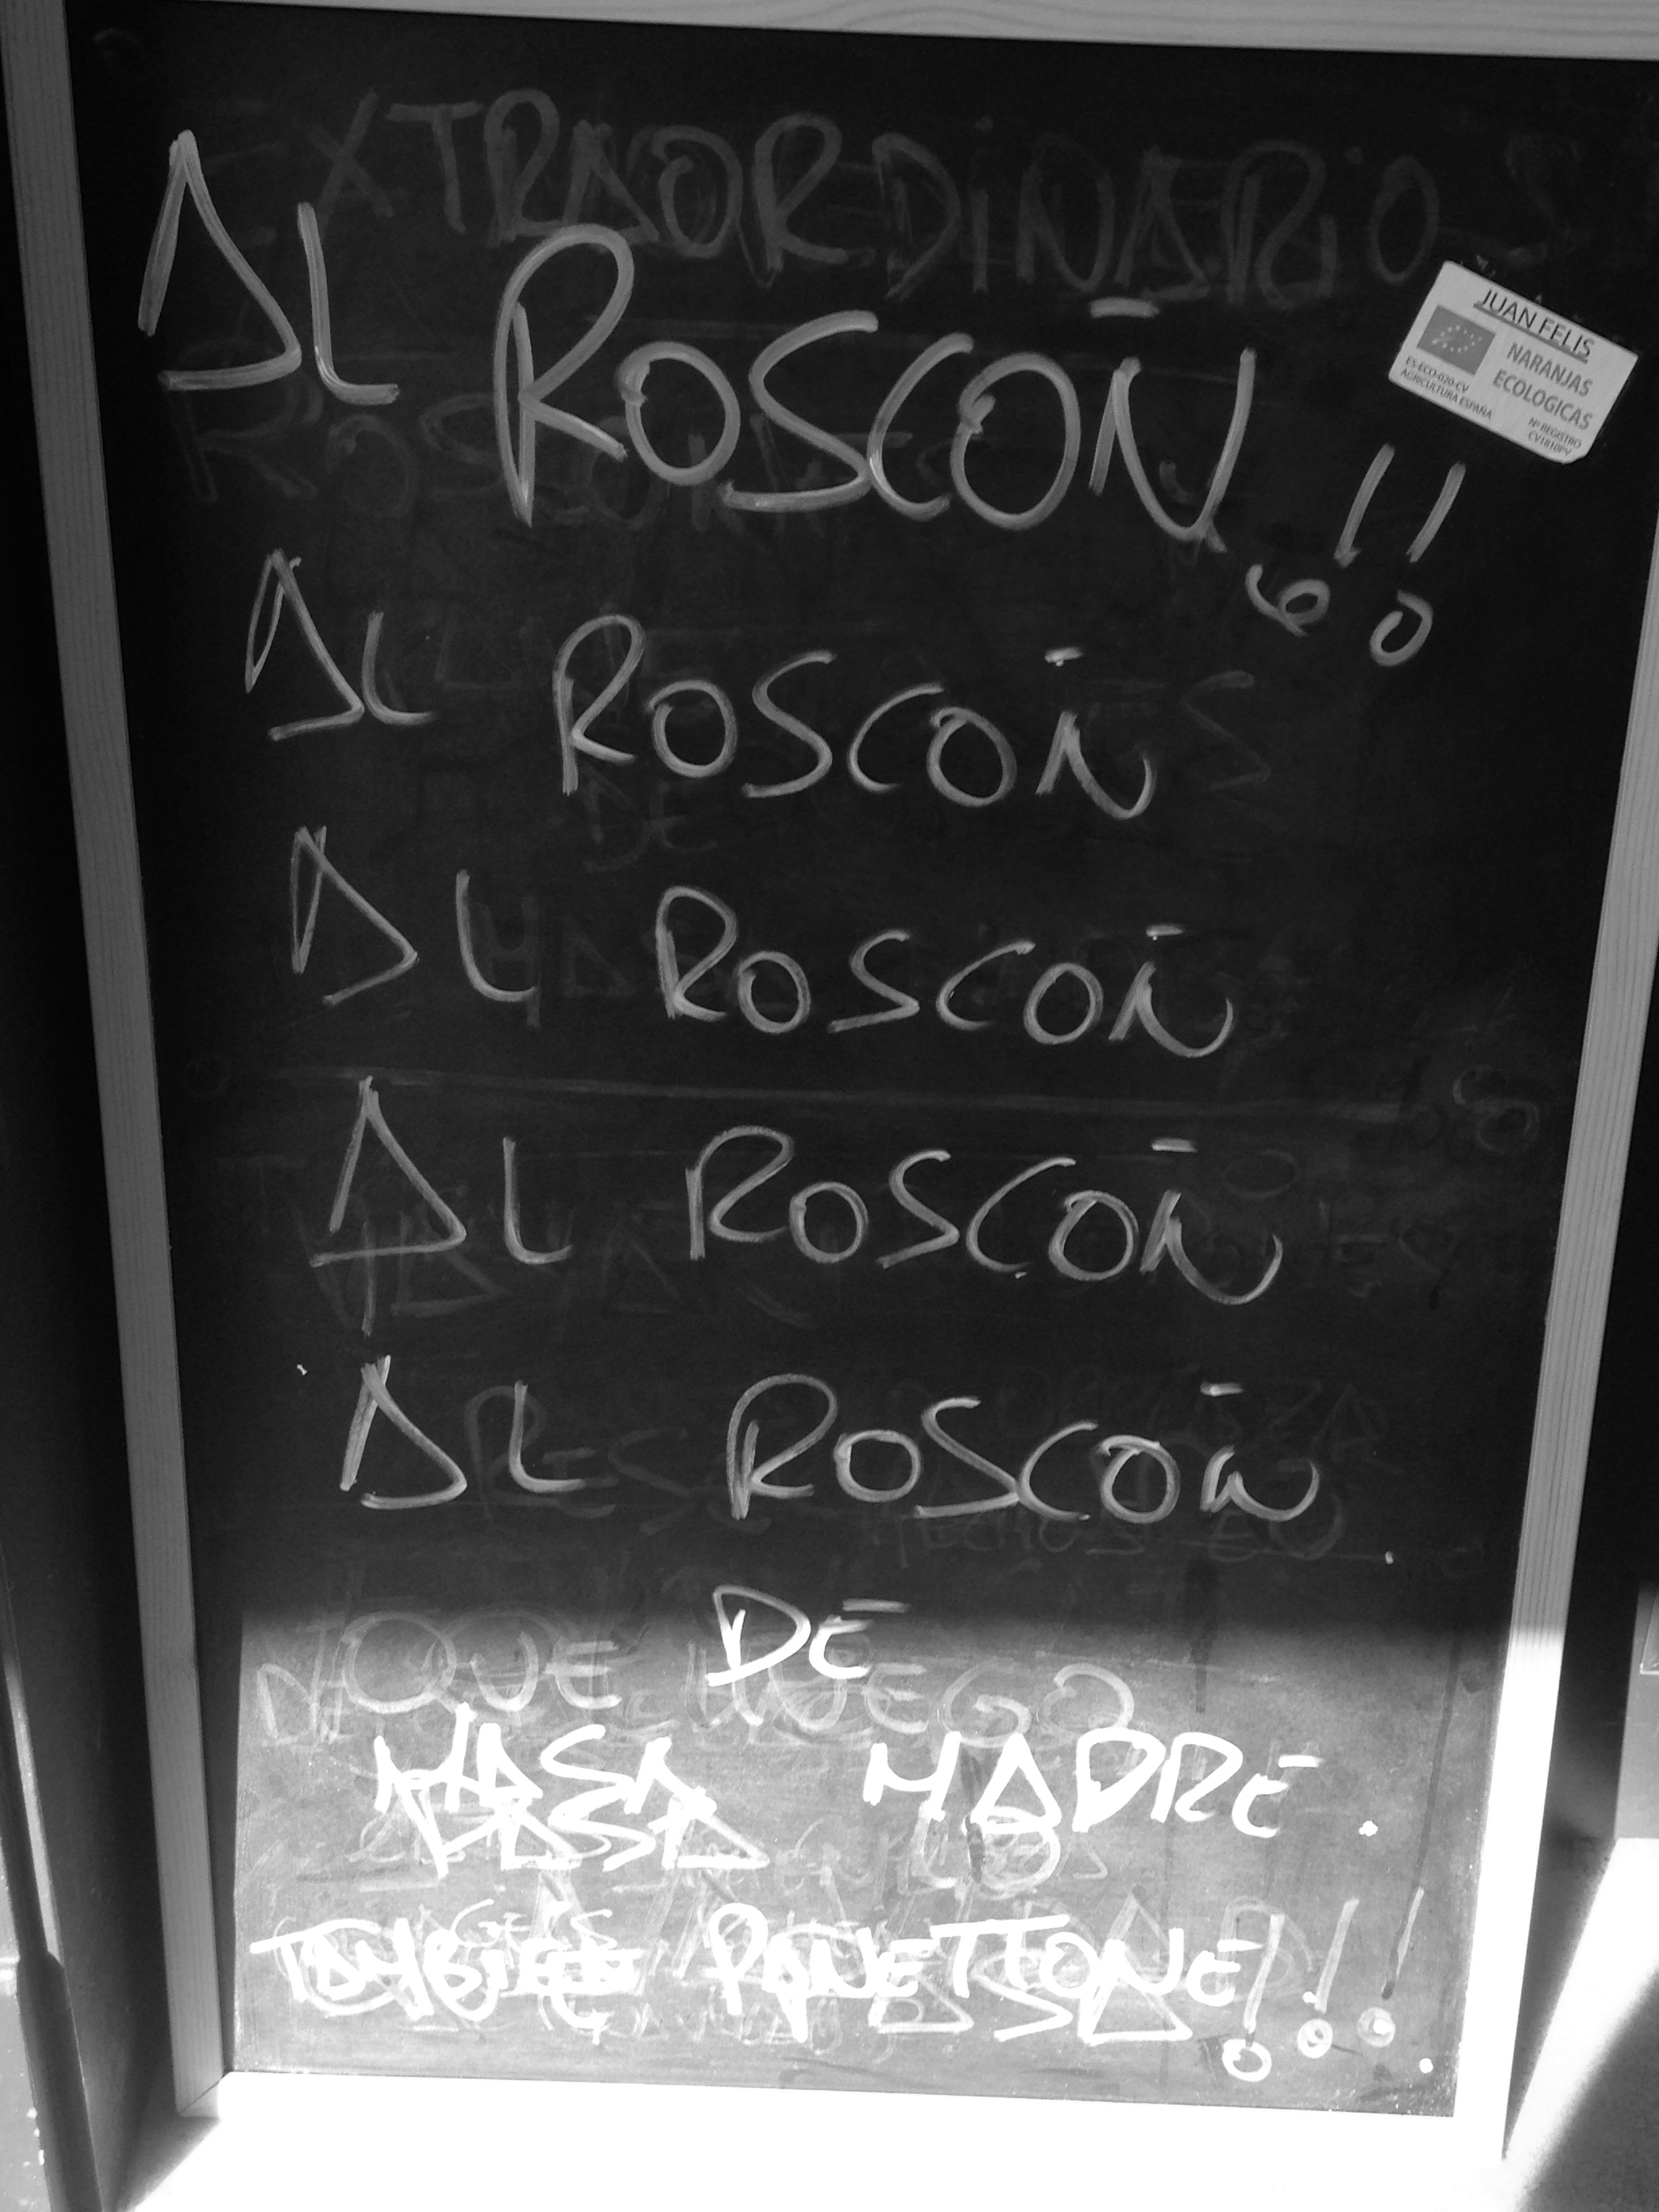 People are really, really into their  roscón  here. Can you tell?